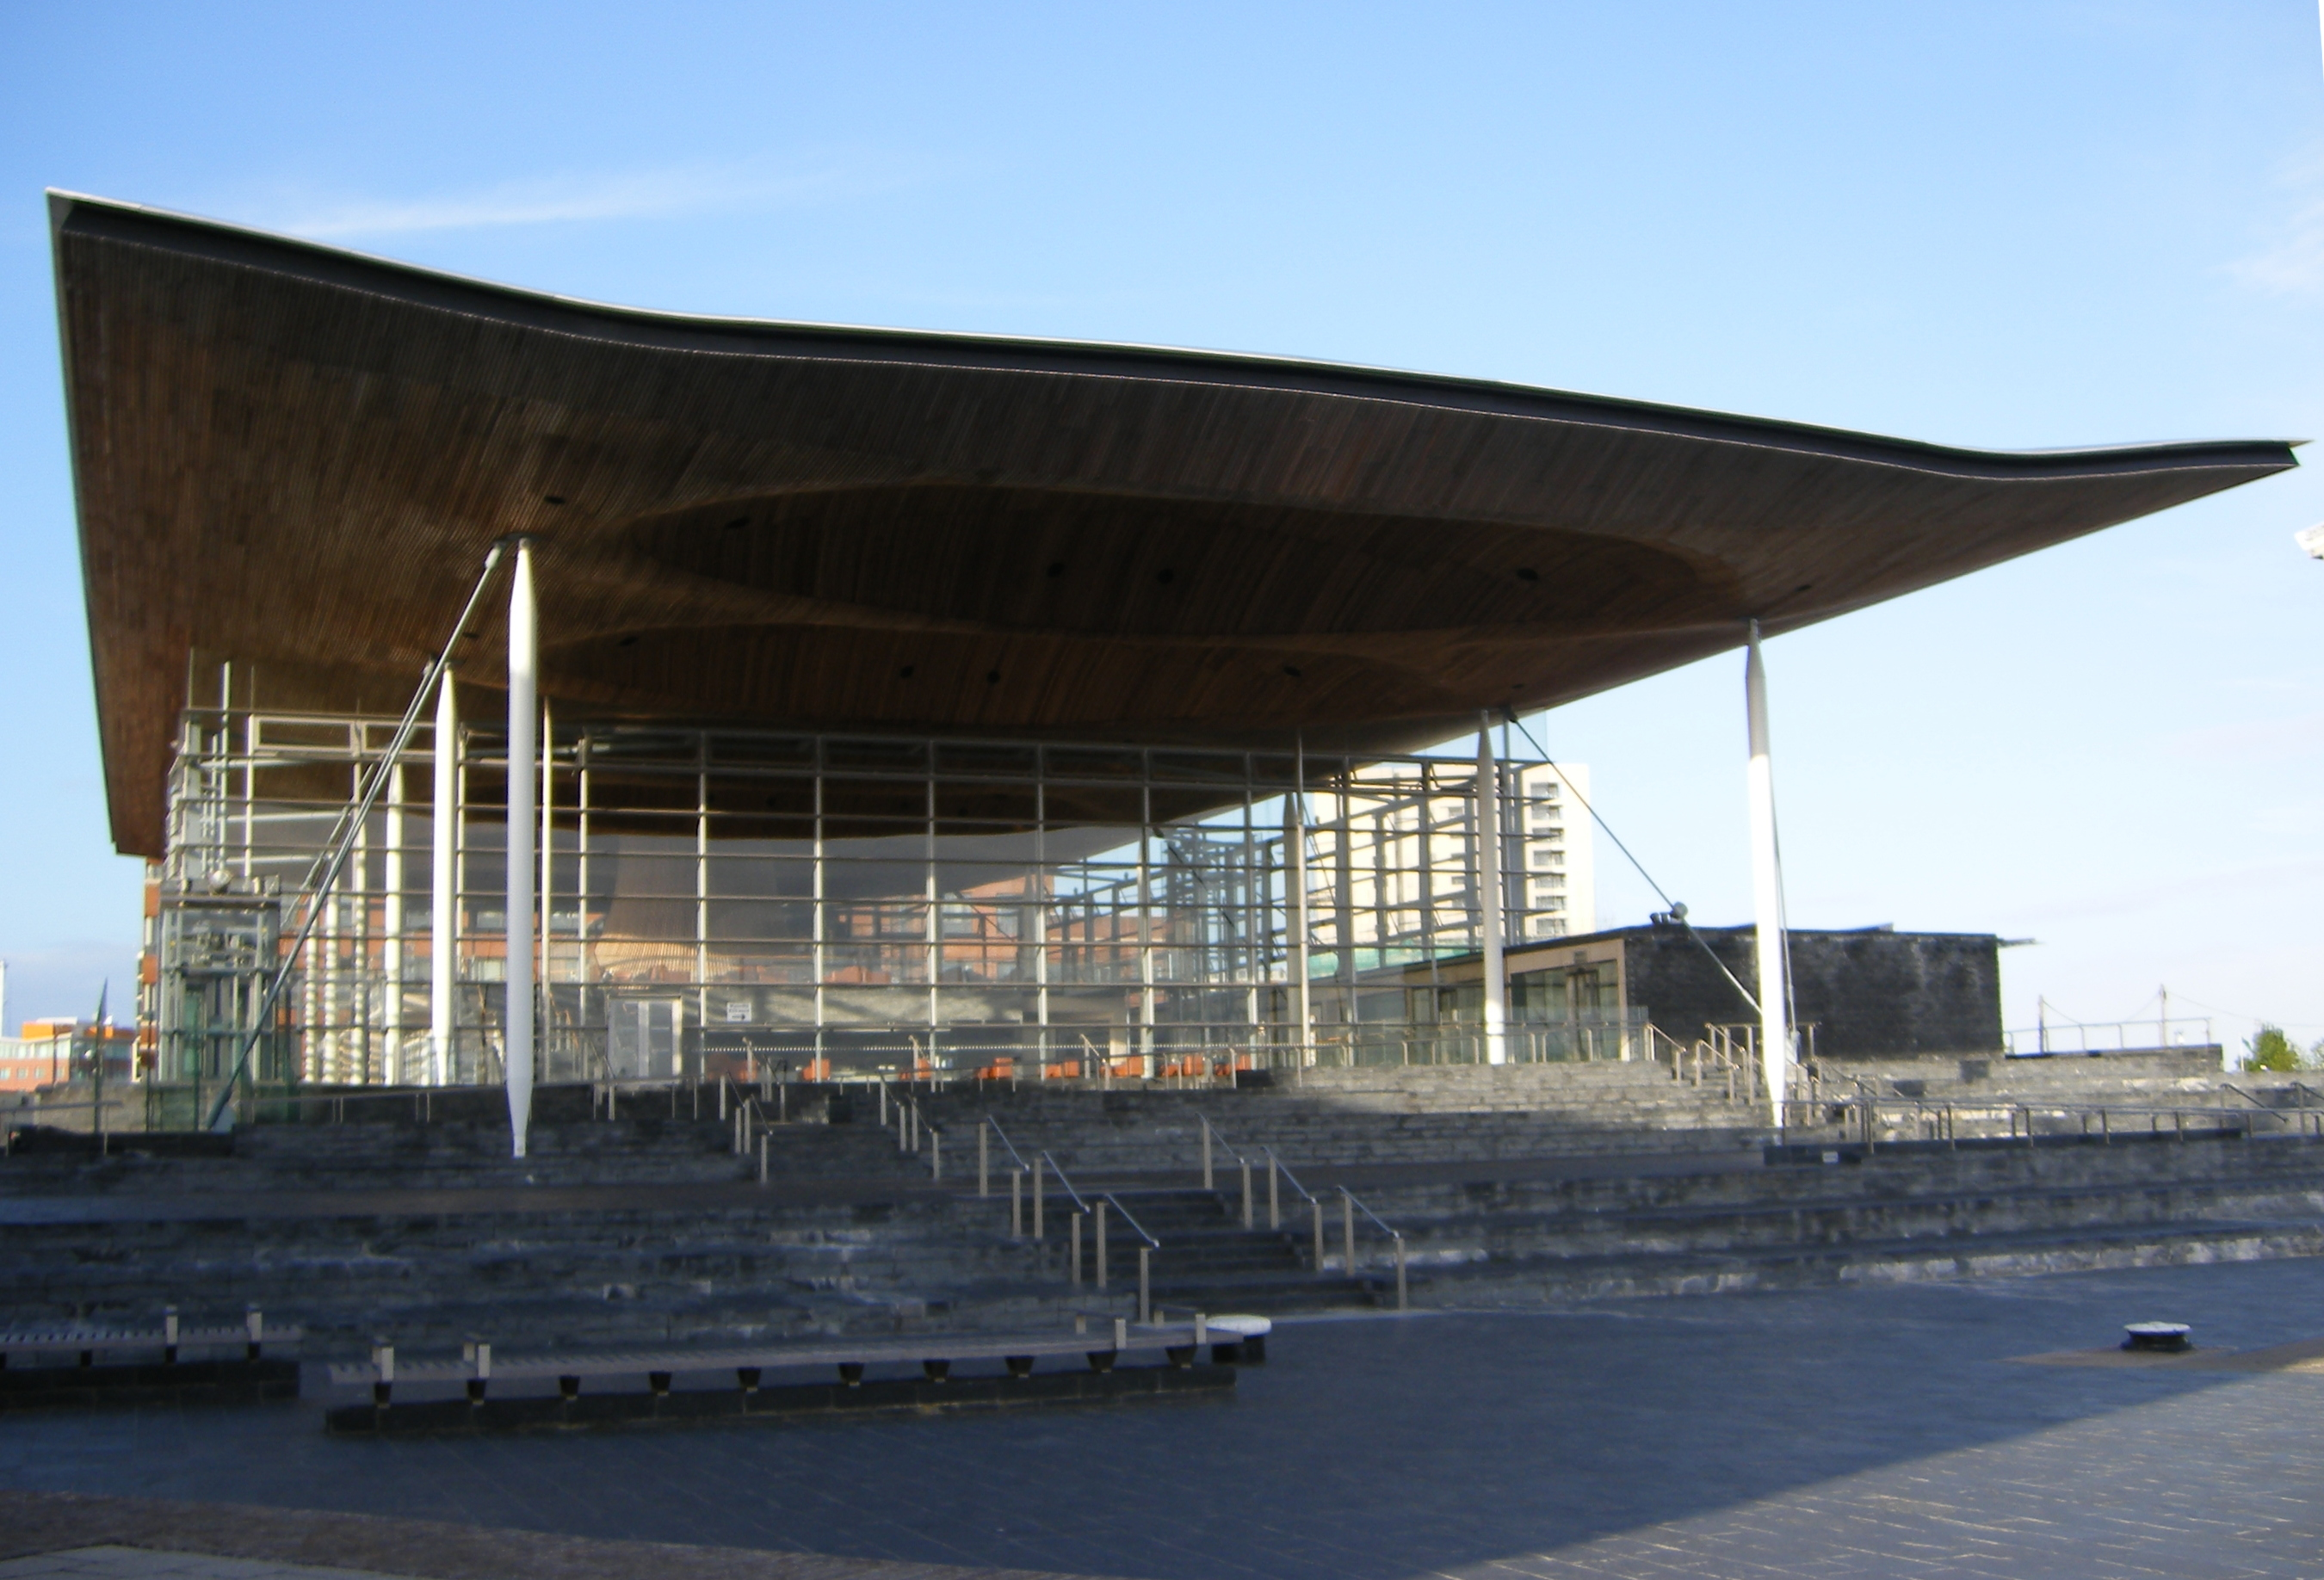 The Senedd.